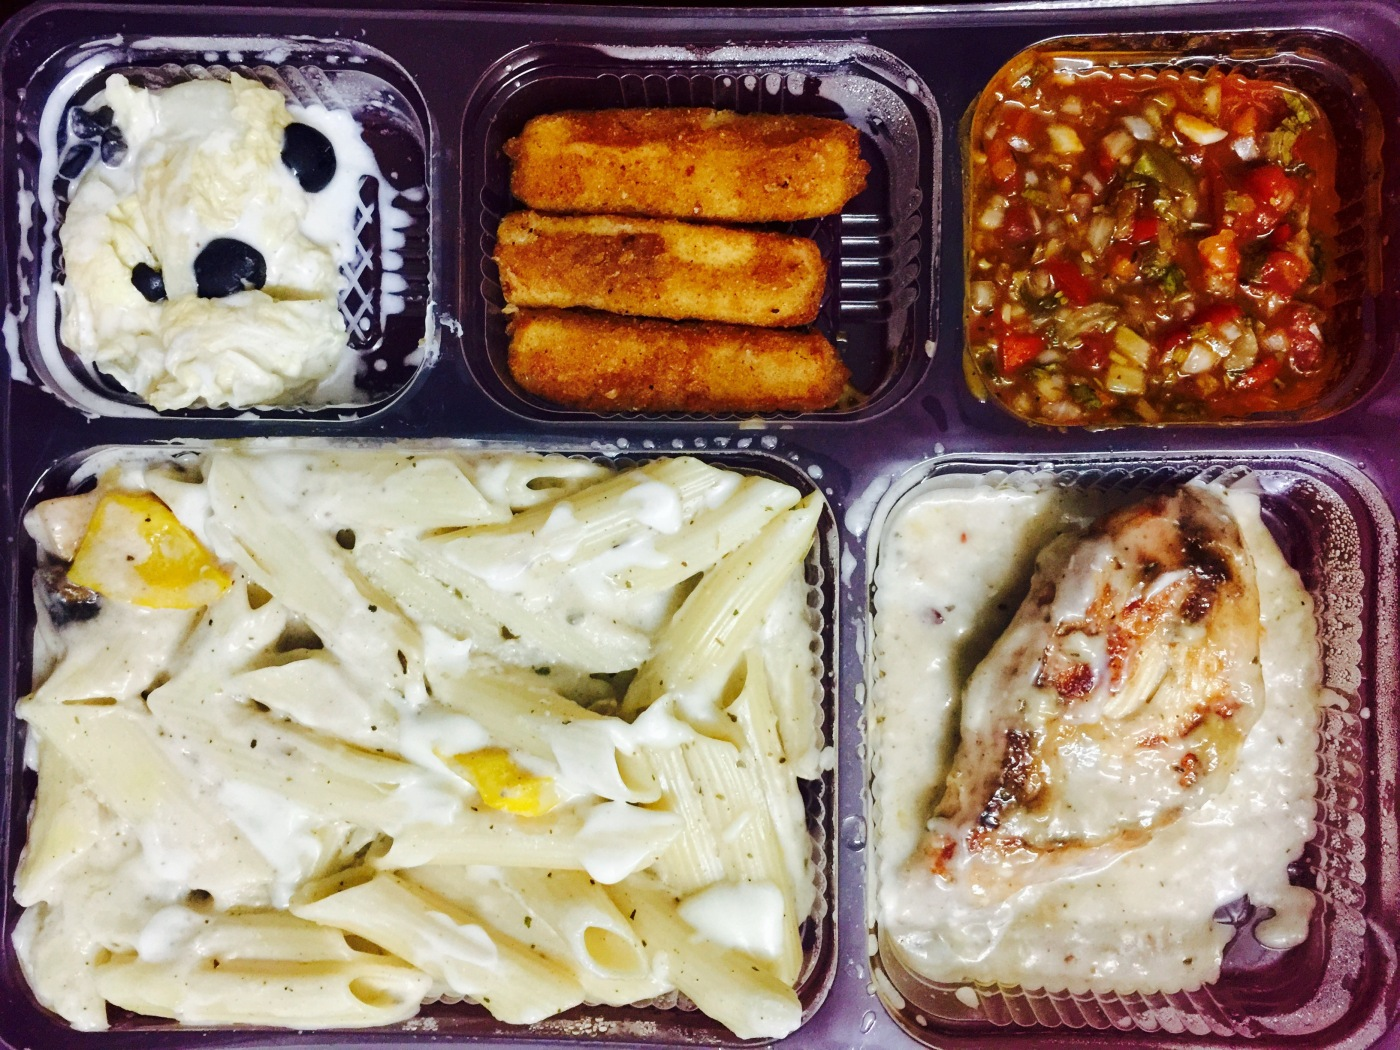 E YUM food delivery: Italian Meal Box